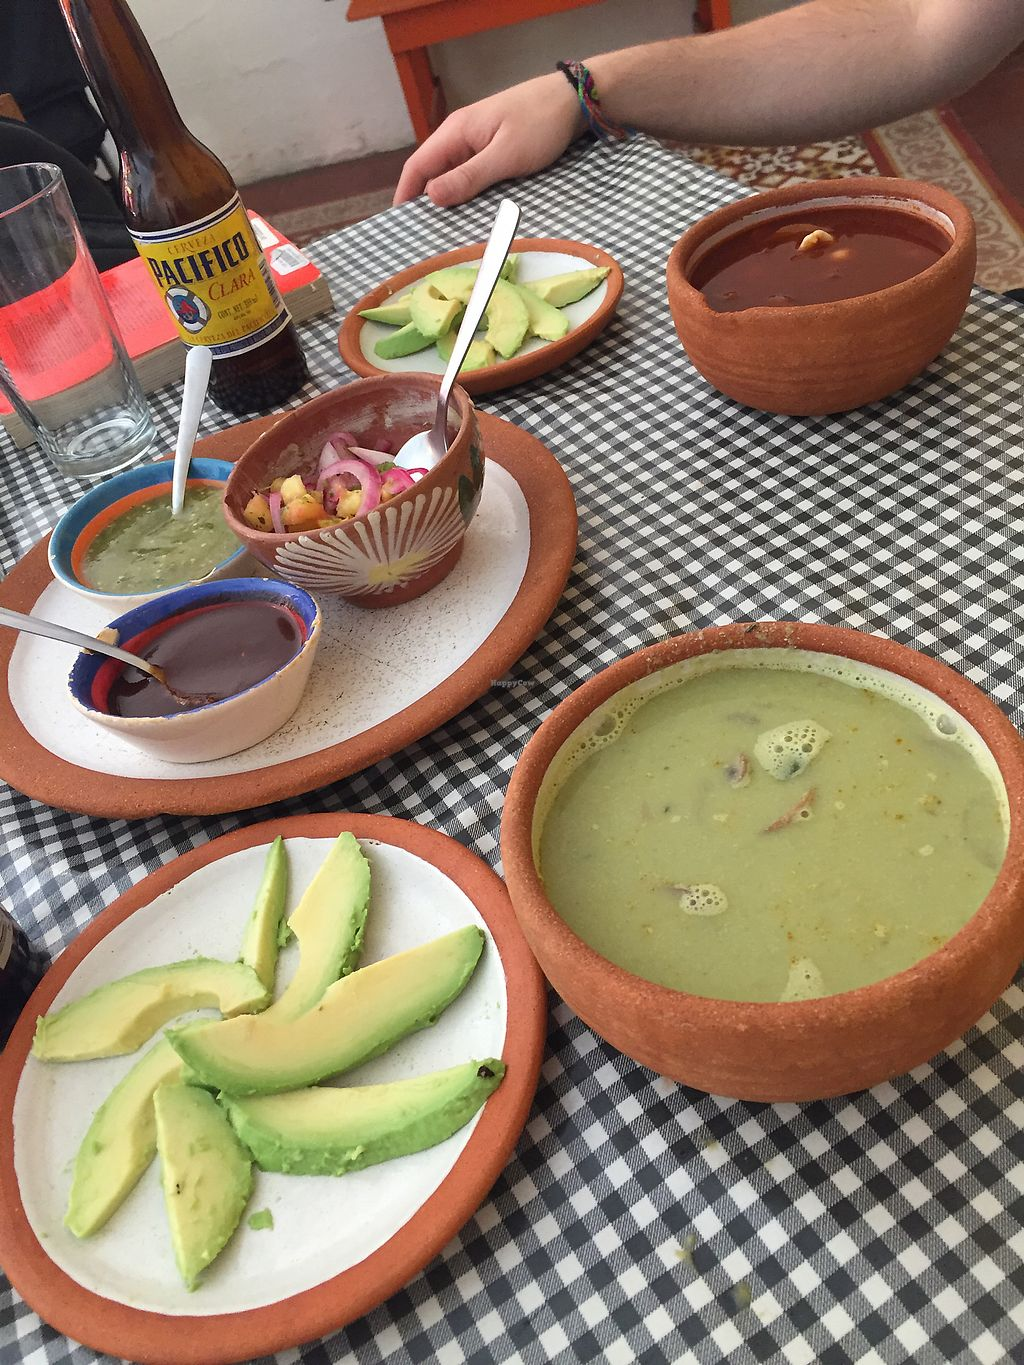 """Photo of Cabuche  by <a href=""""/members/profile/SinzianaK"""">SinzianaK</a> <br/>Green and red pozole with avocado  <br/> December 30, 2017  - <a href='/contact/abuse/image/82103/340695'>Report</a>"""